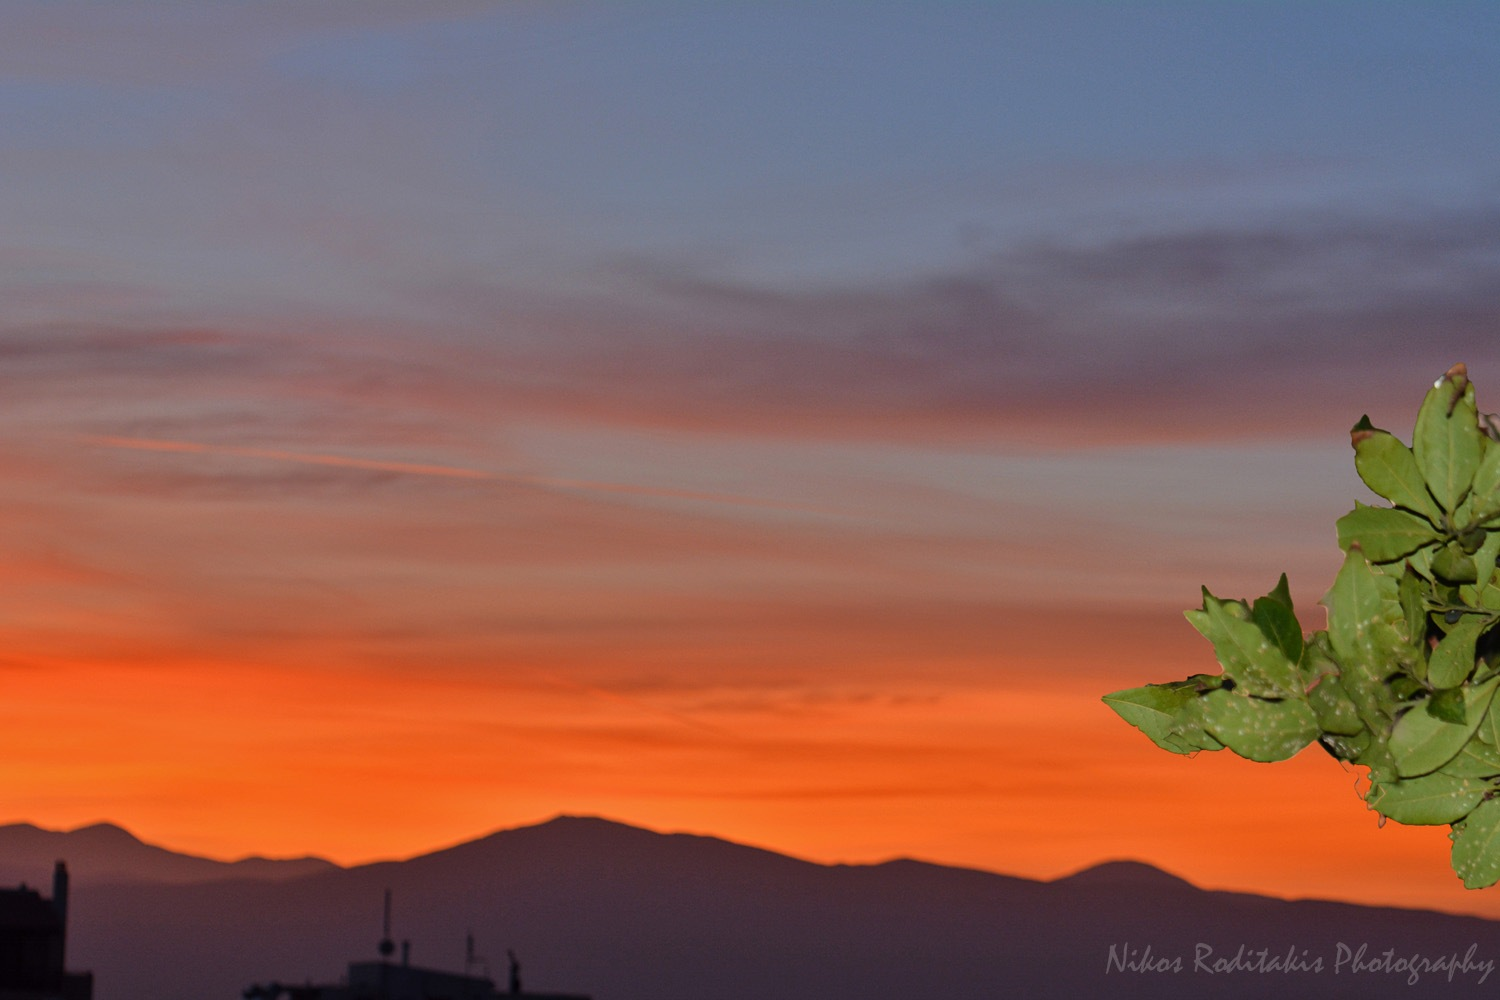 Sunset from the balcon by Nikos Roditakis